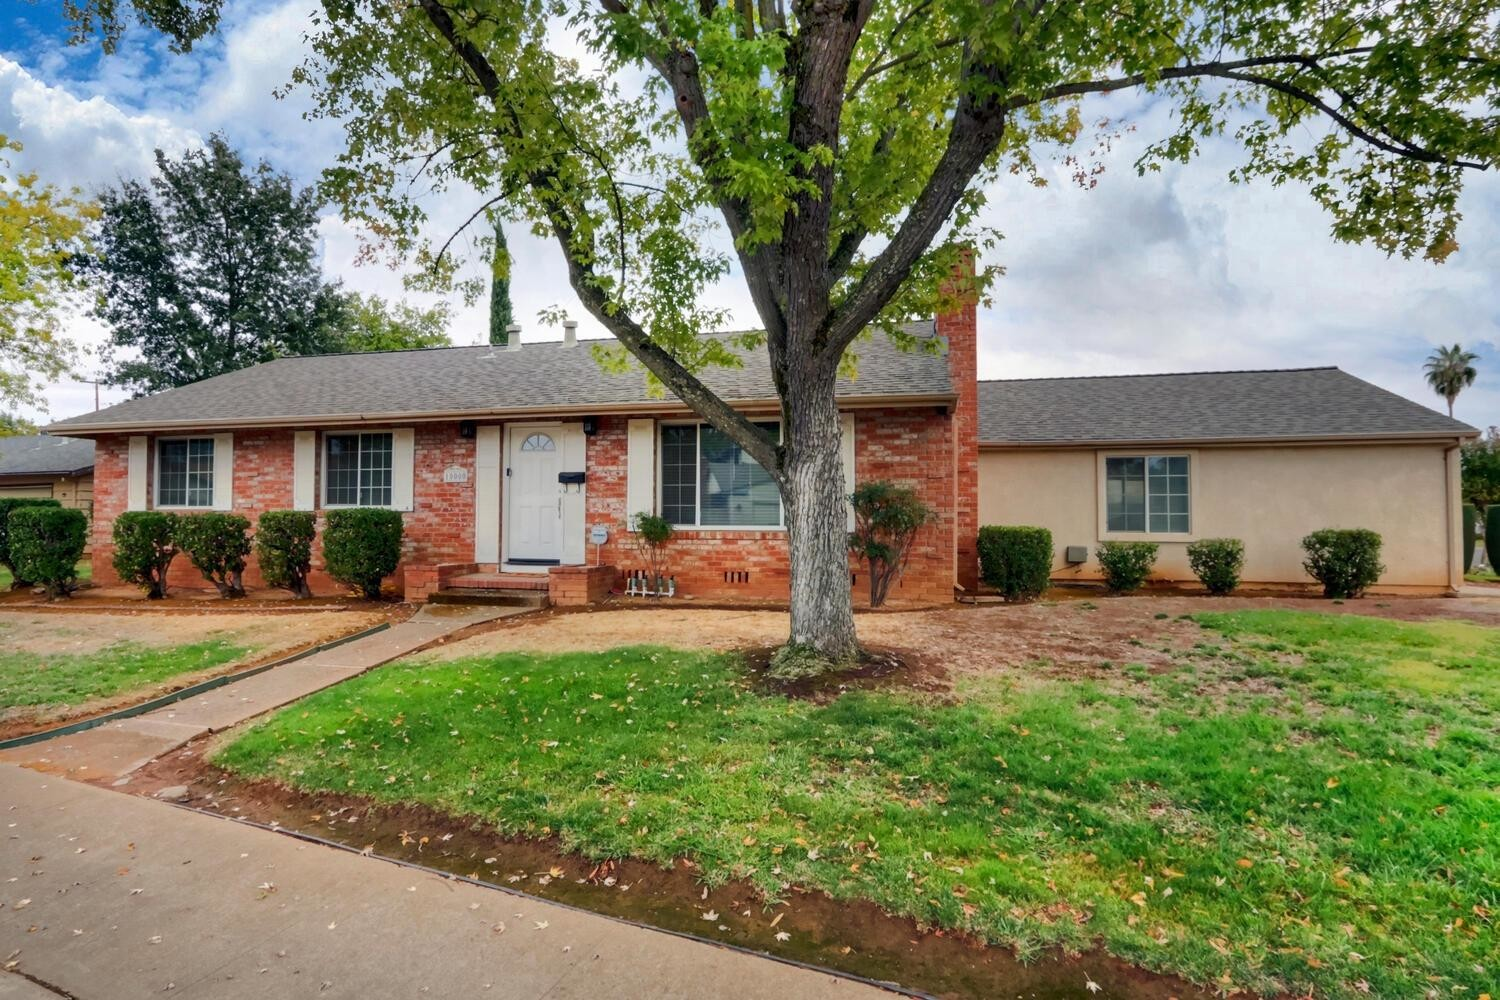 4-Bedroom House In Lincoln Village